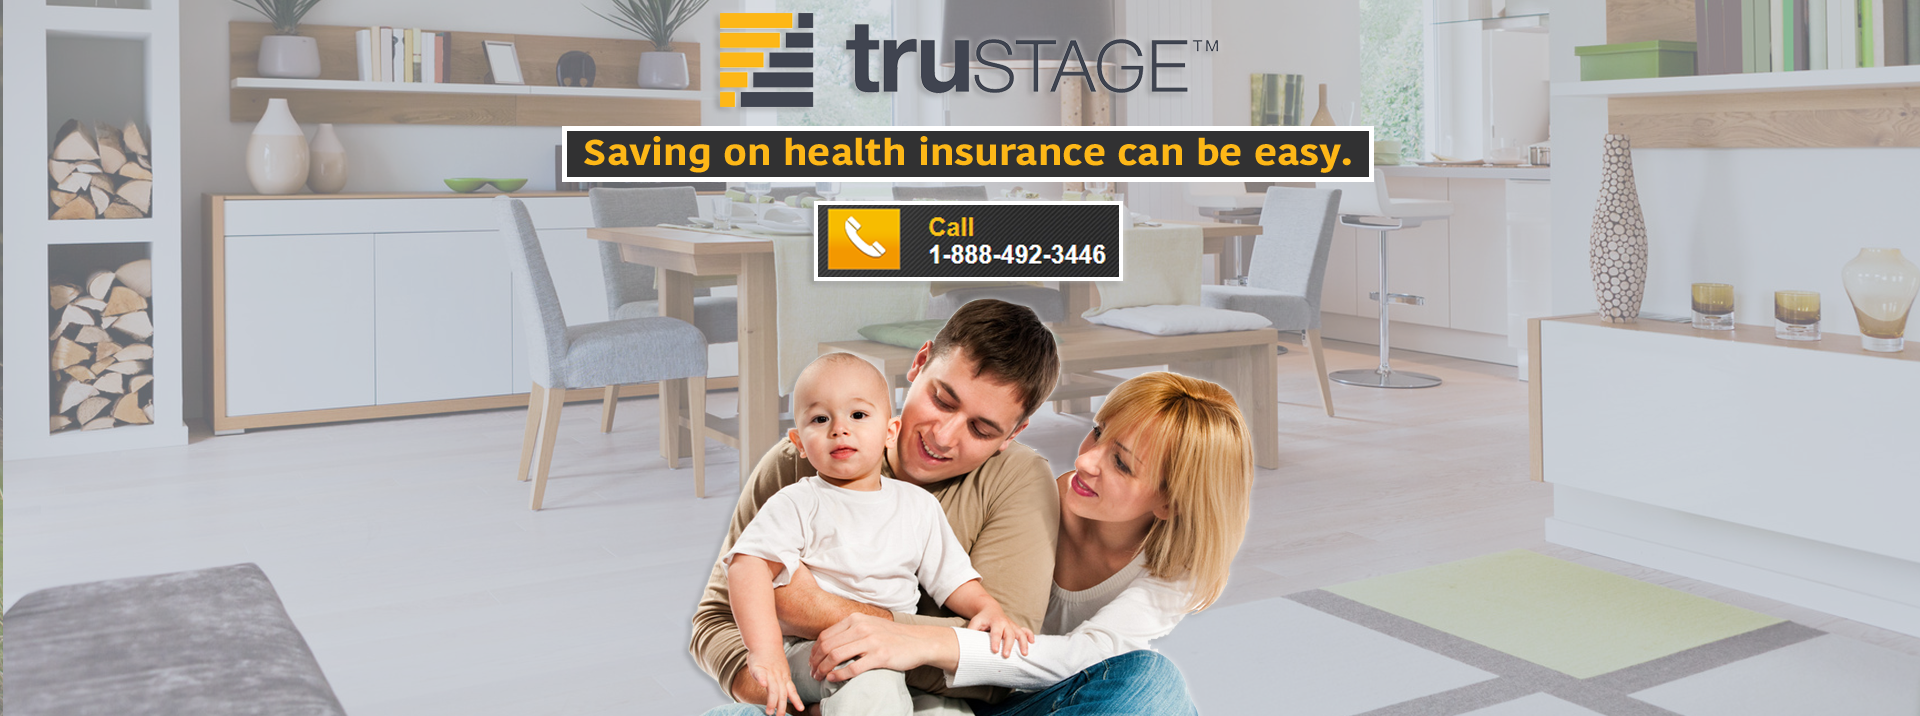 Trustage. Savng on health nsurance can be easy